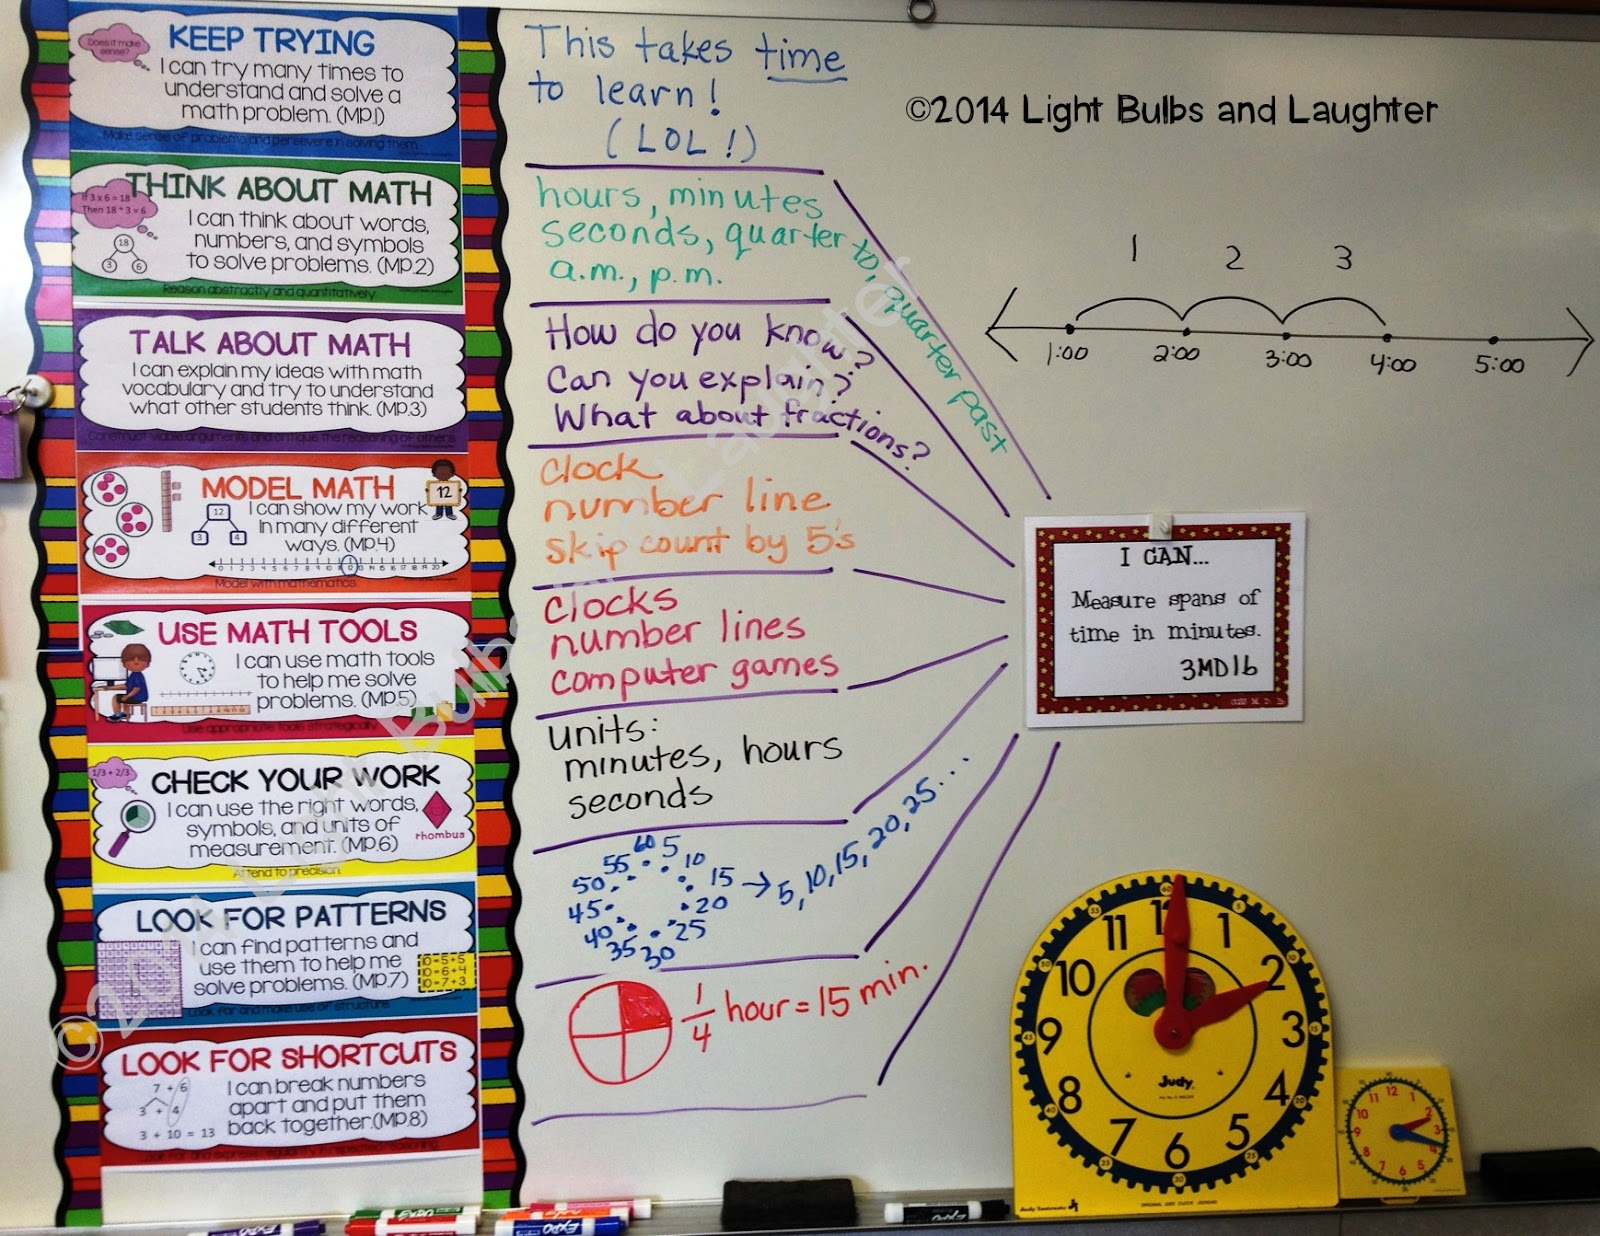 Light Bulbs and Laughter - Eight Standards for Mathematical Practice, Part 1